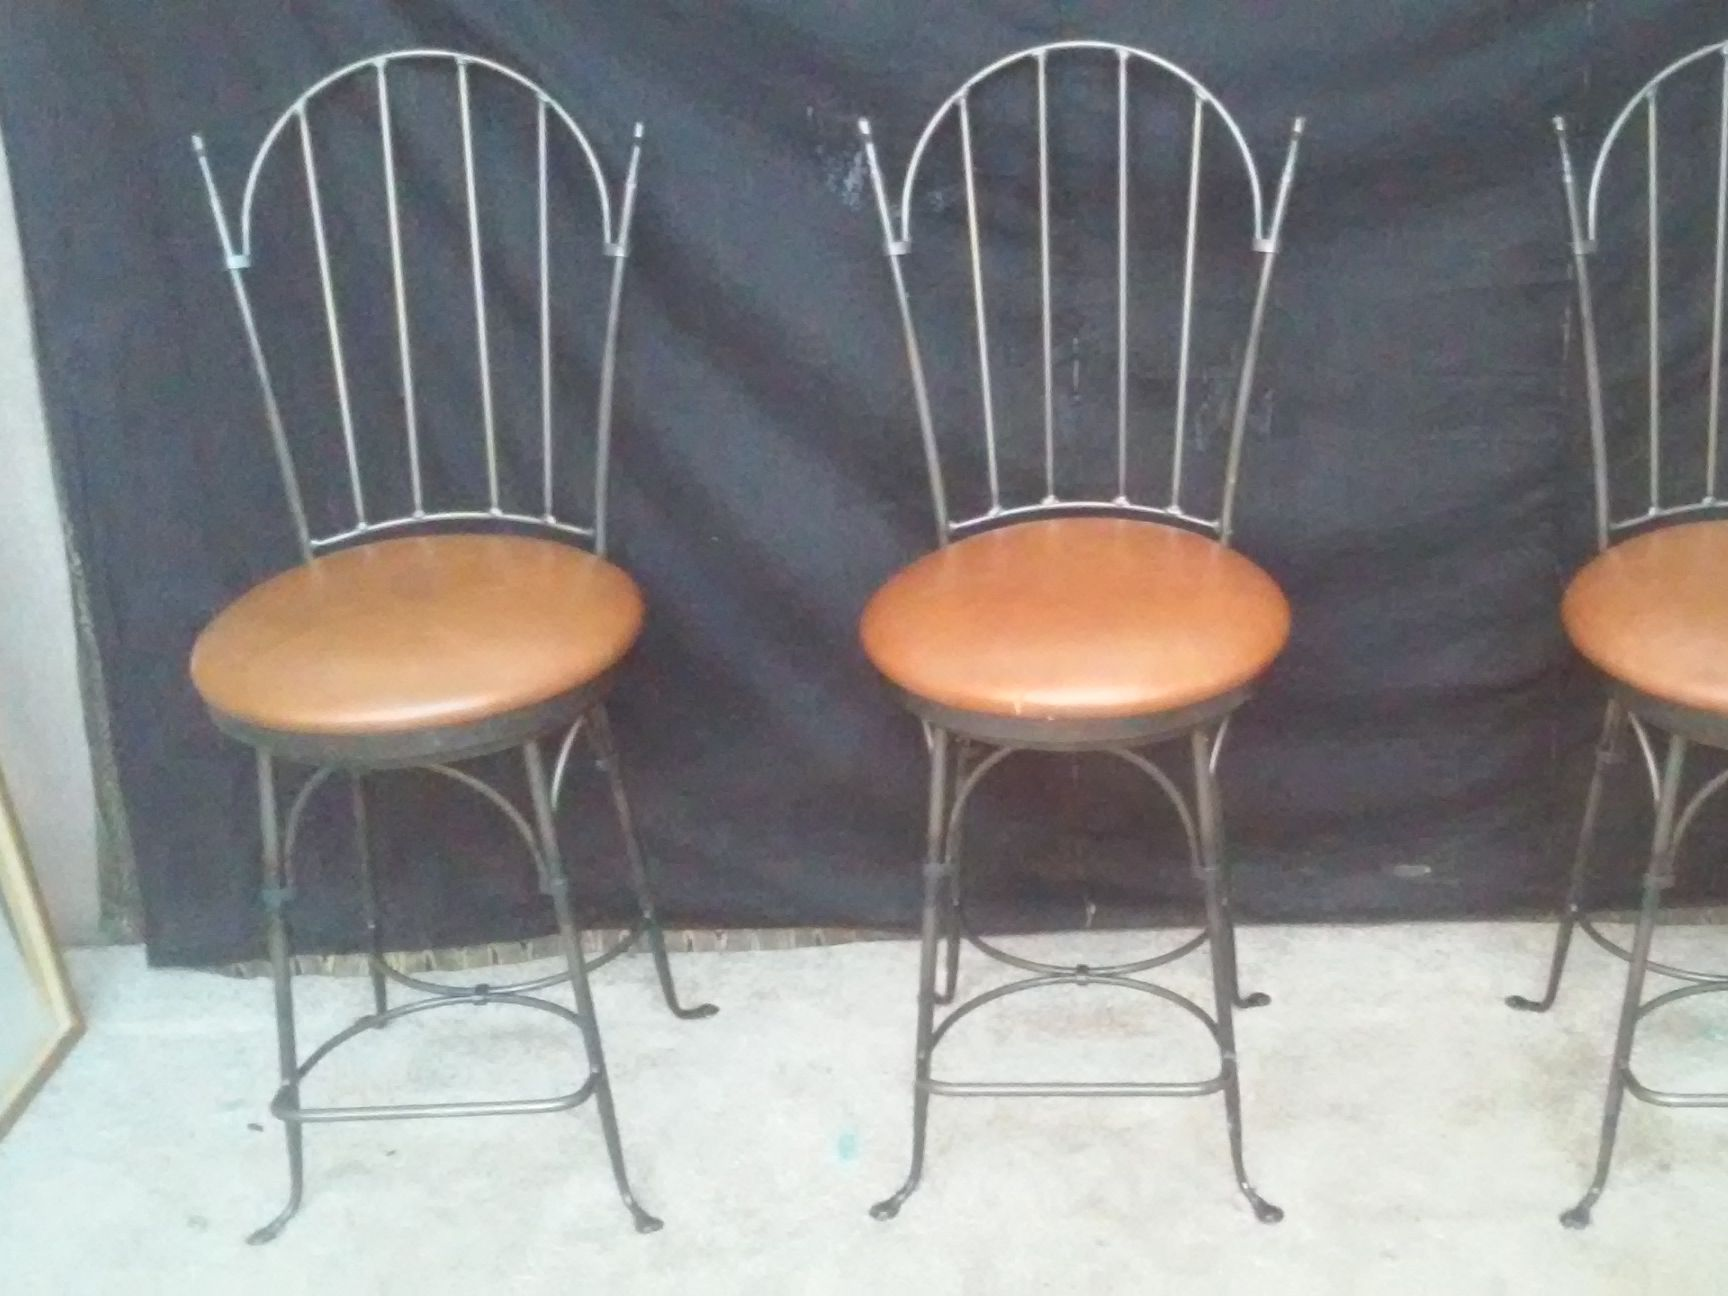 Stupendous Charleston Forge Shaker Arch Swivel Bar Stools Caraccident5 Cool Chair Designs And Ideas Caraccident5Info